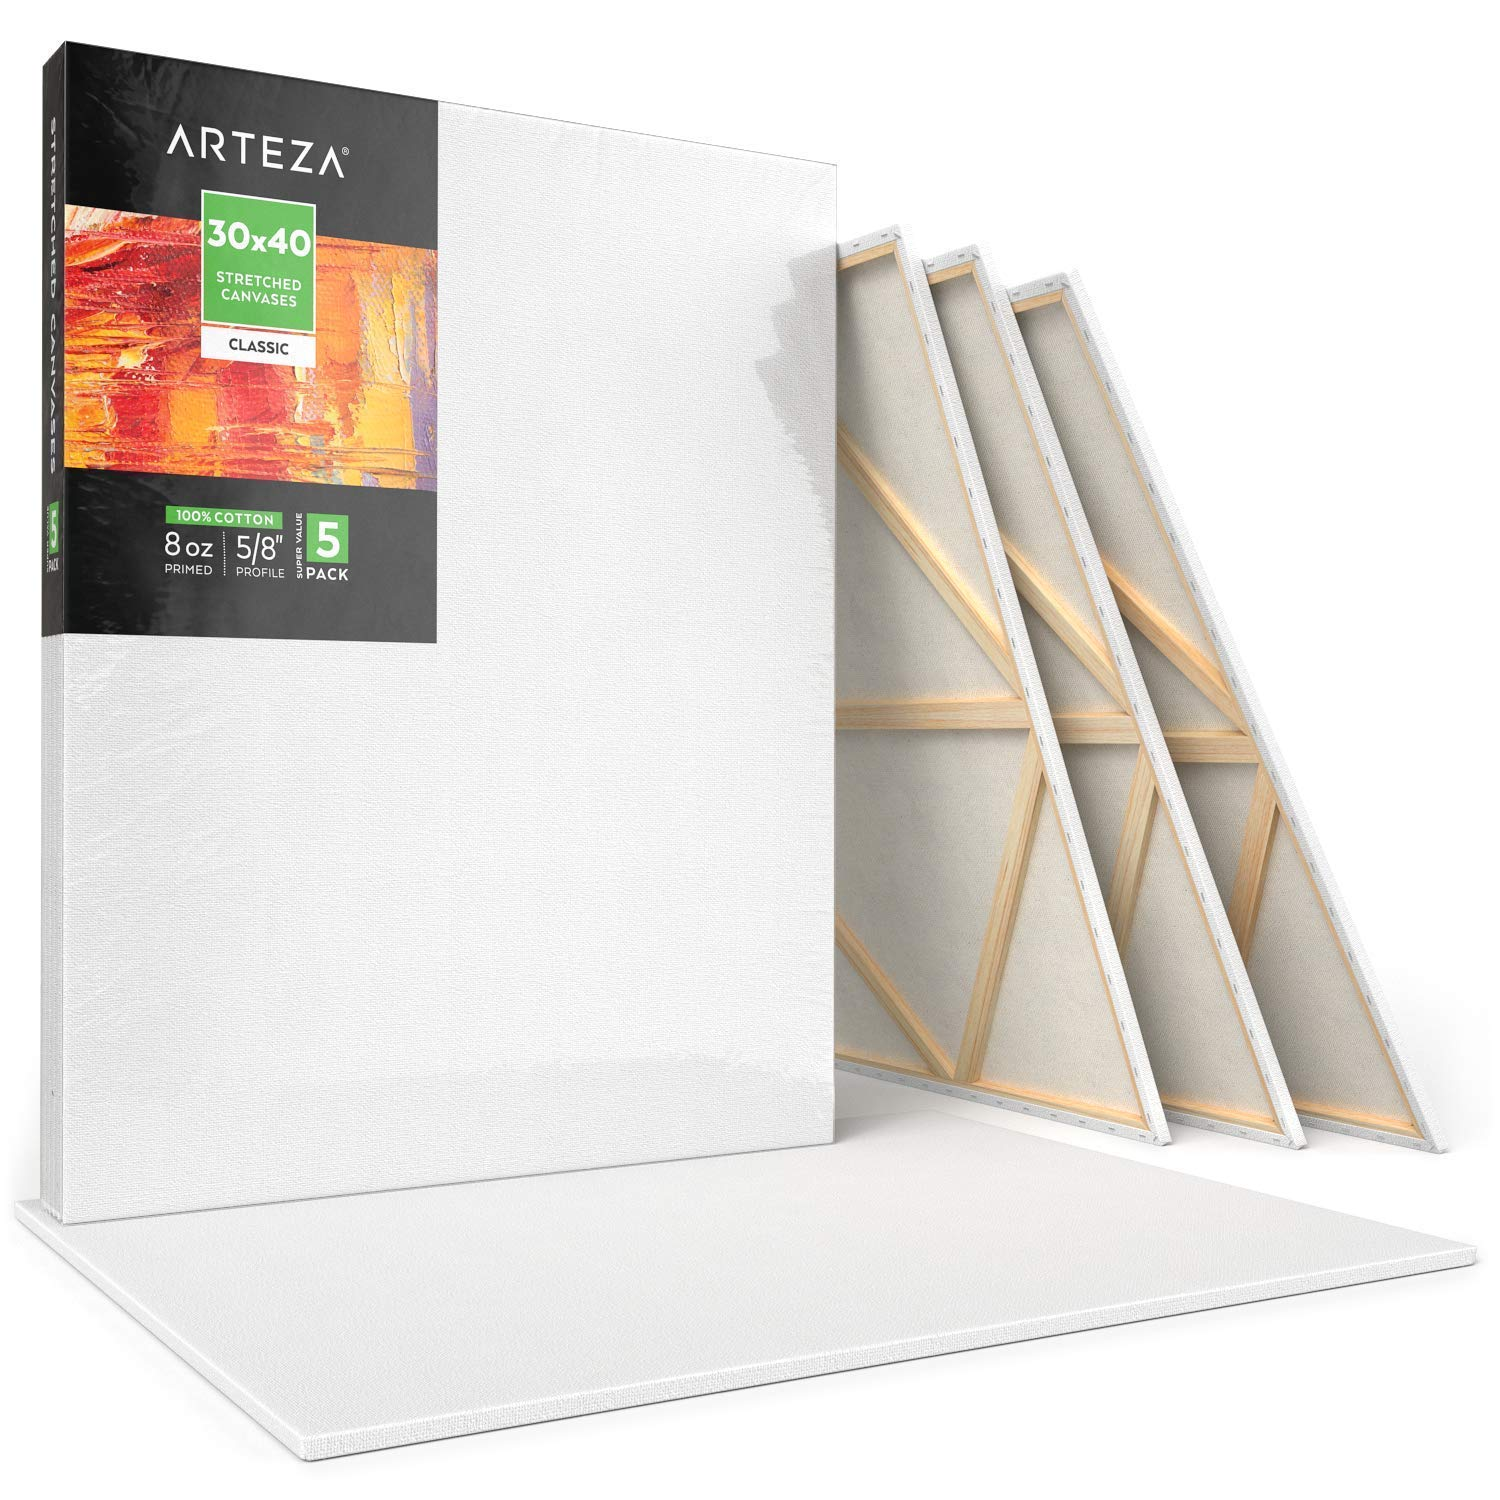 "Arteza 30x40"" Stretched White Blank Canvas, Bulk Pack of 5, Primed, 100% Cotton for Painting, Acrylic Pouring, Oil Paint & Wet Art Media, Canvases for Professional Artist, Hobby Painters & Beginner by ARTEZA (Image #3)"